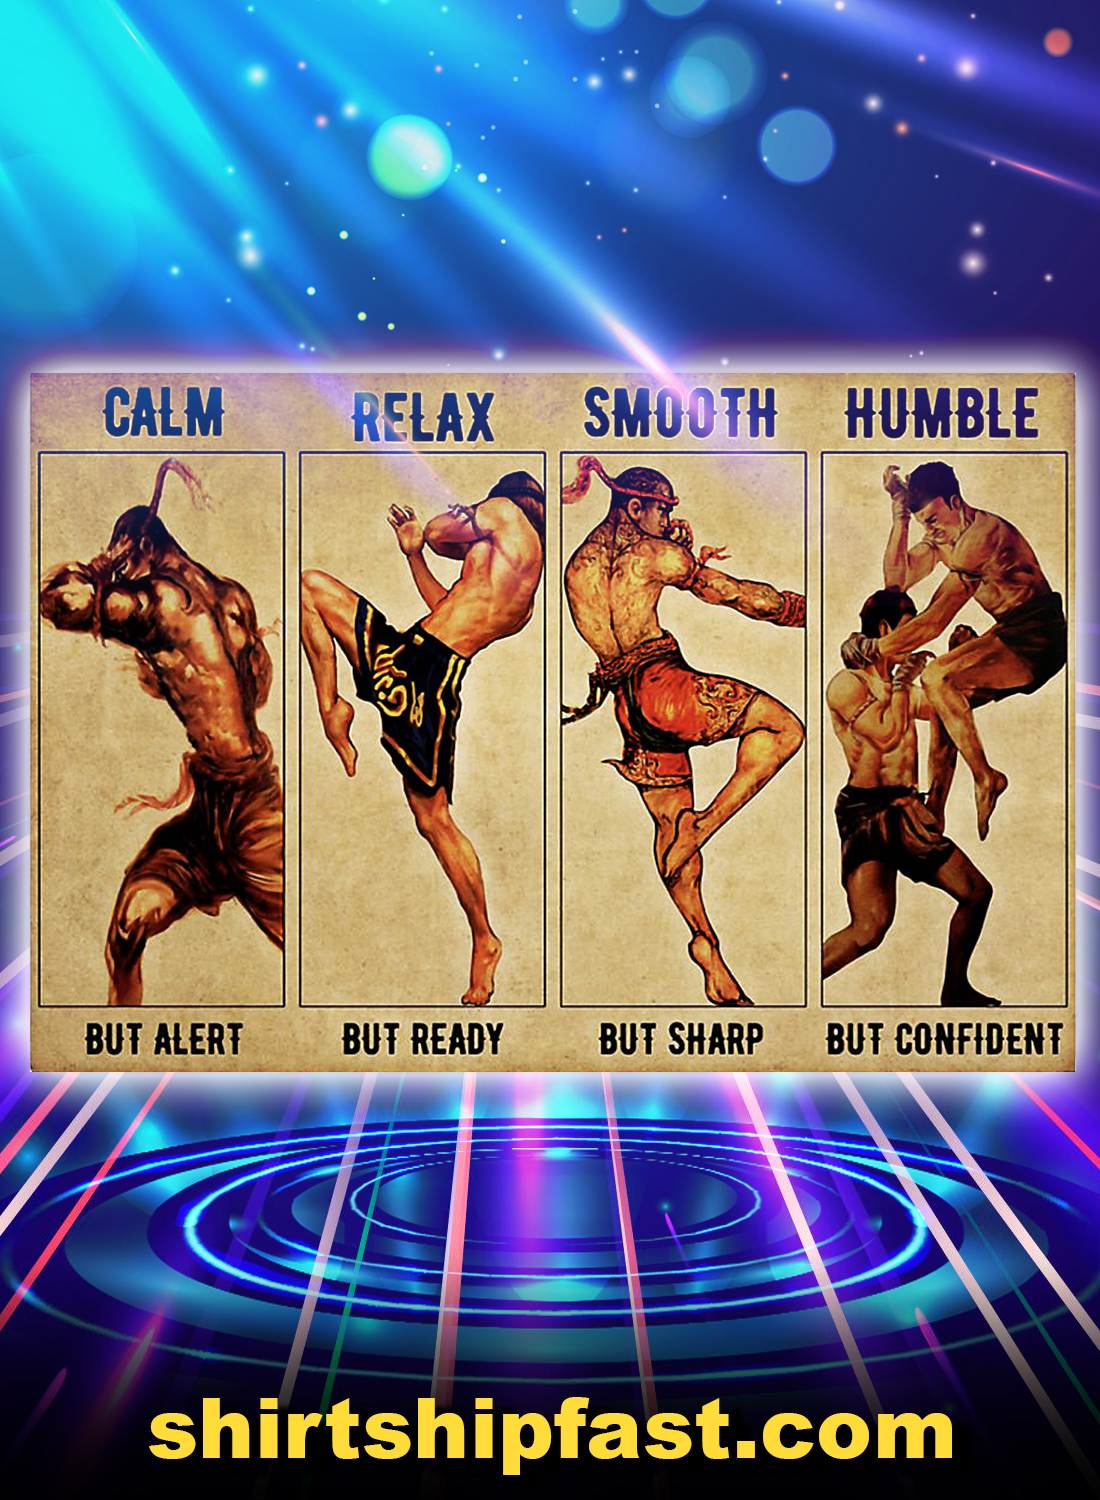 Poster Muay Thai Calm relax smooth humble